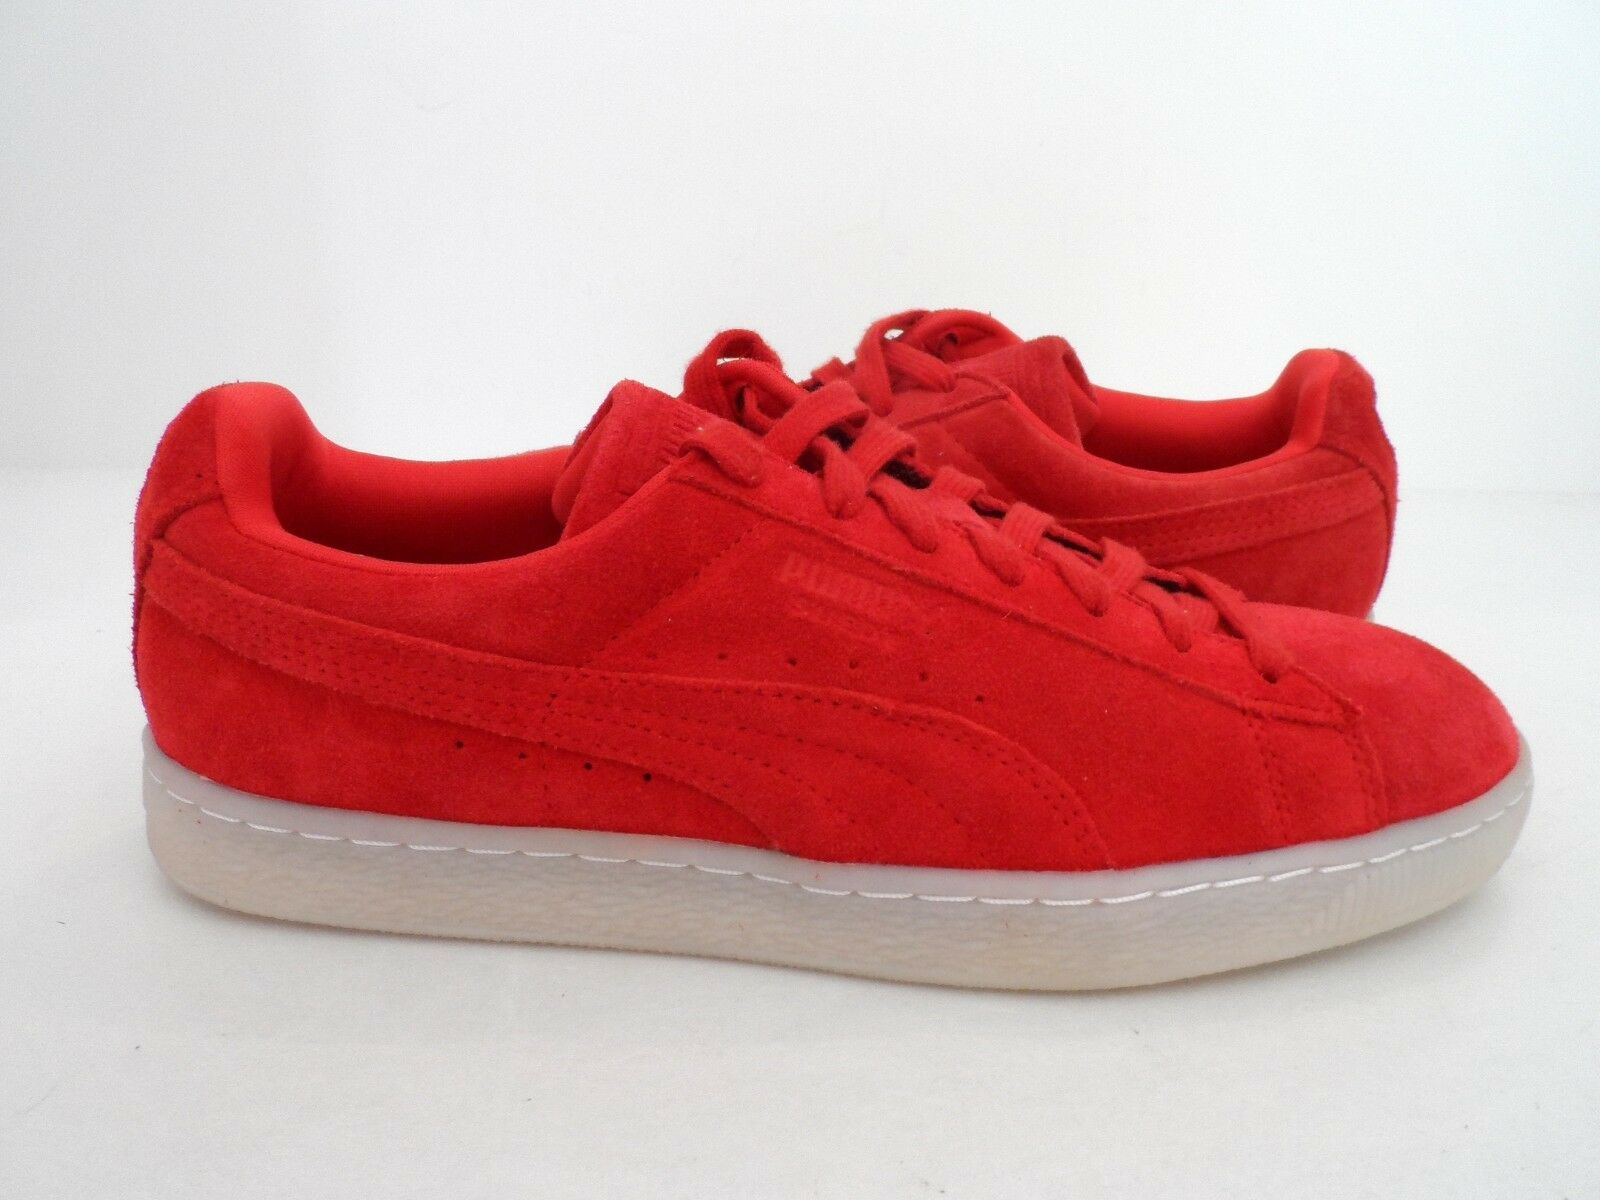 Puma Mens Suede Classic colord shoes Red Size 9